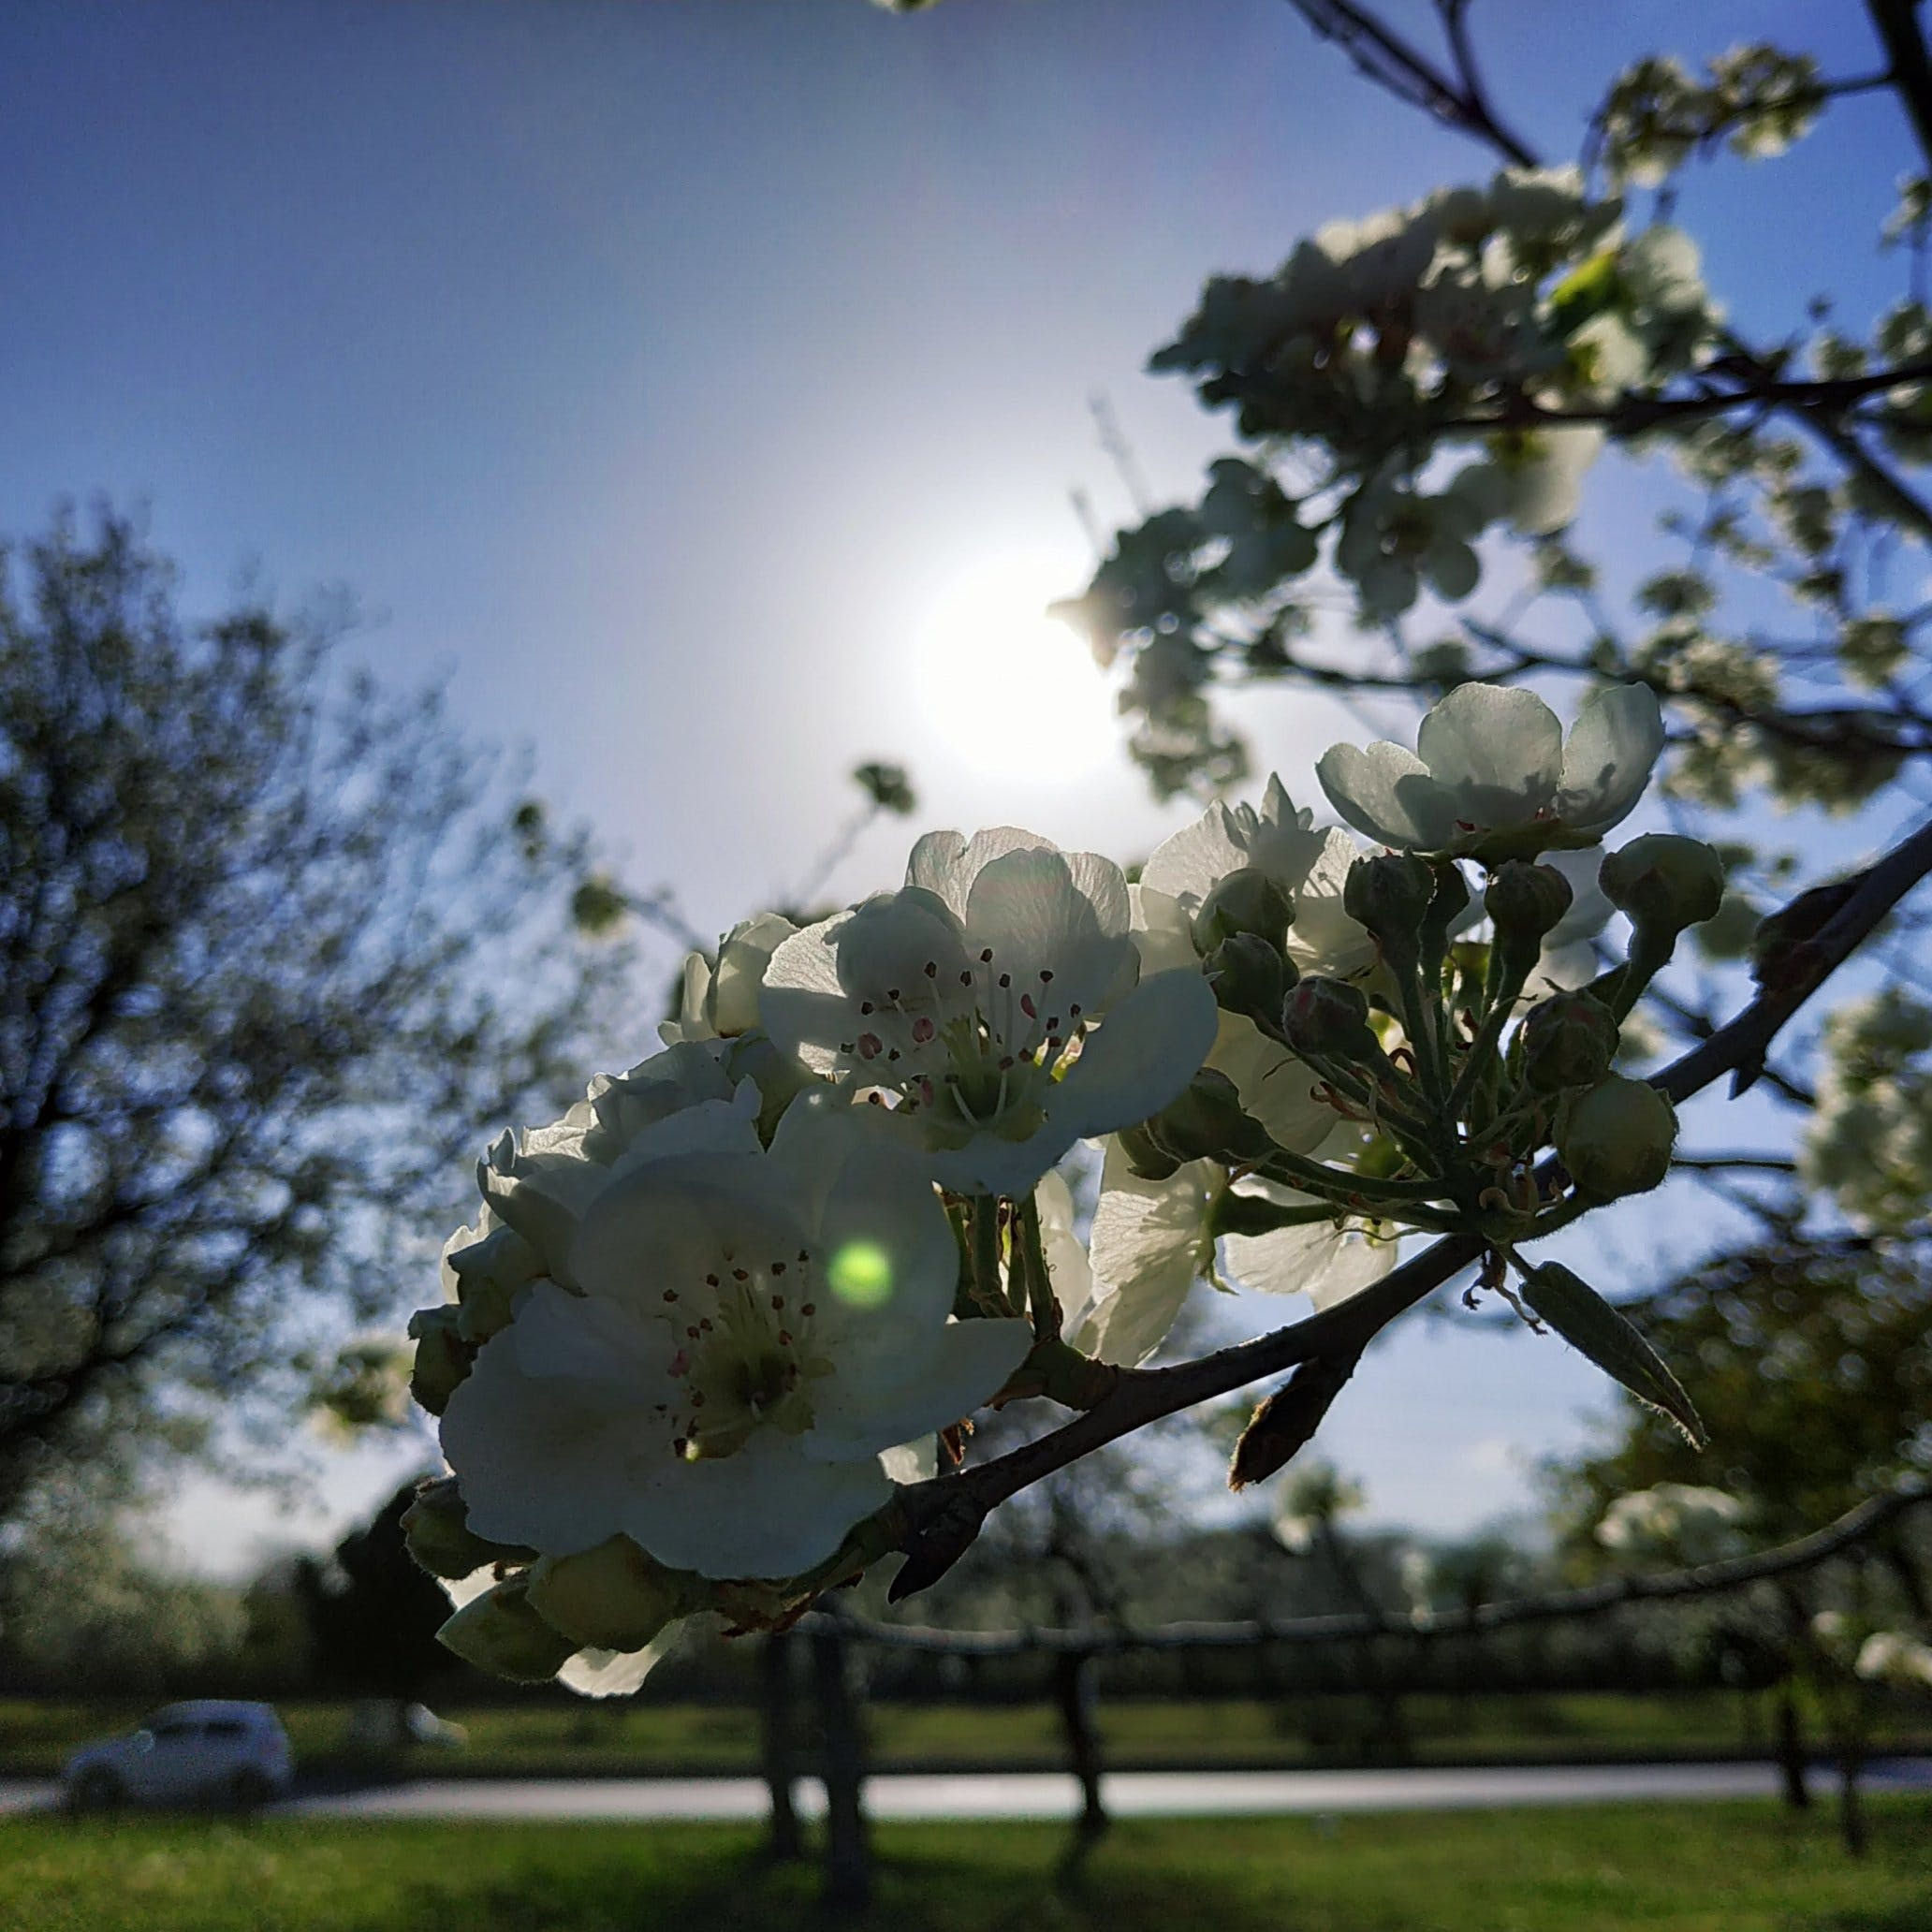 Free stock photo of cherry blossoms, day light, lens flare, pathway